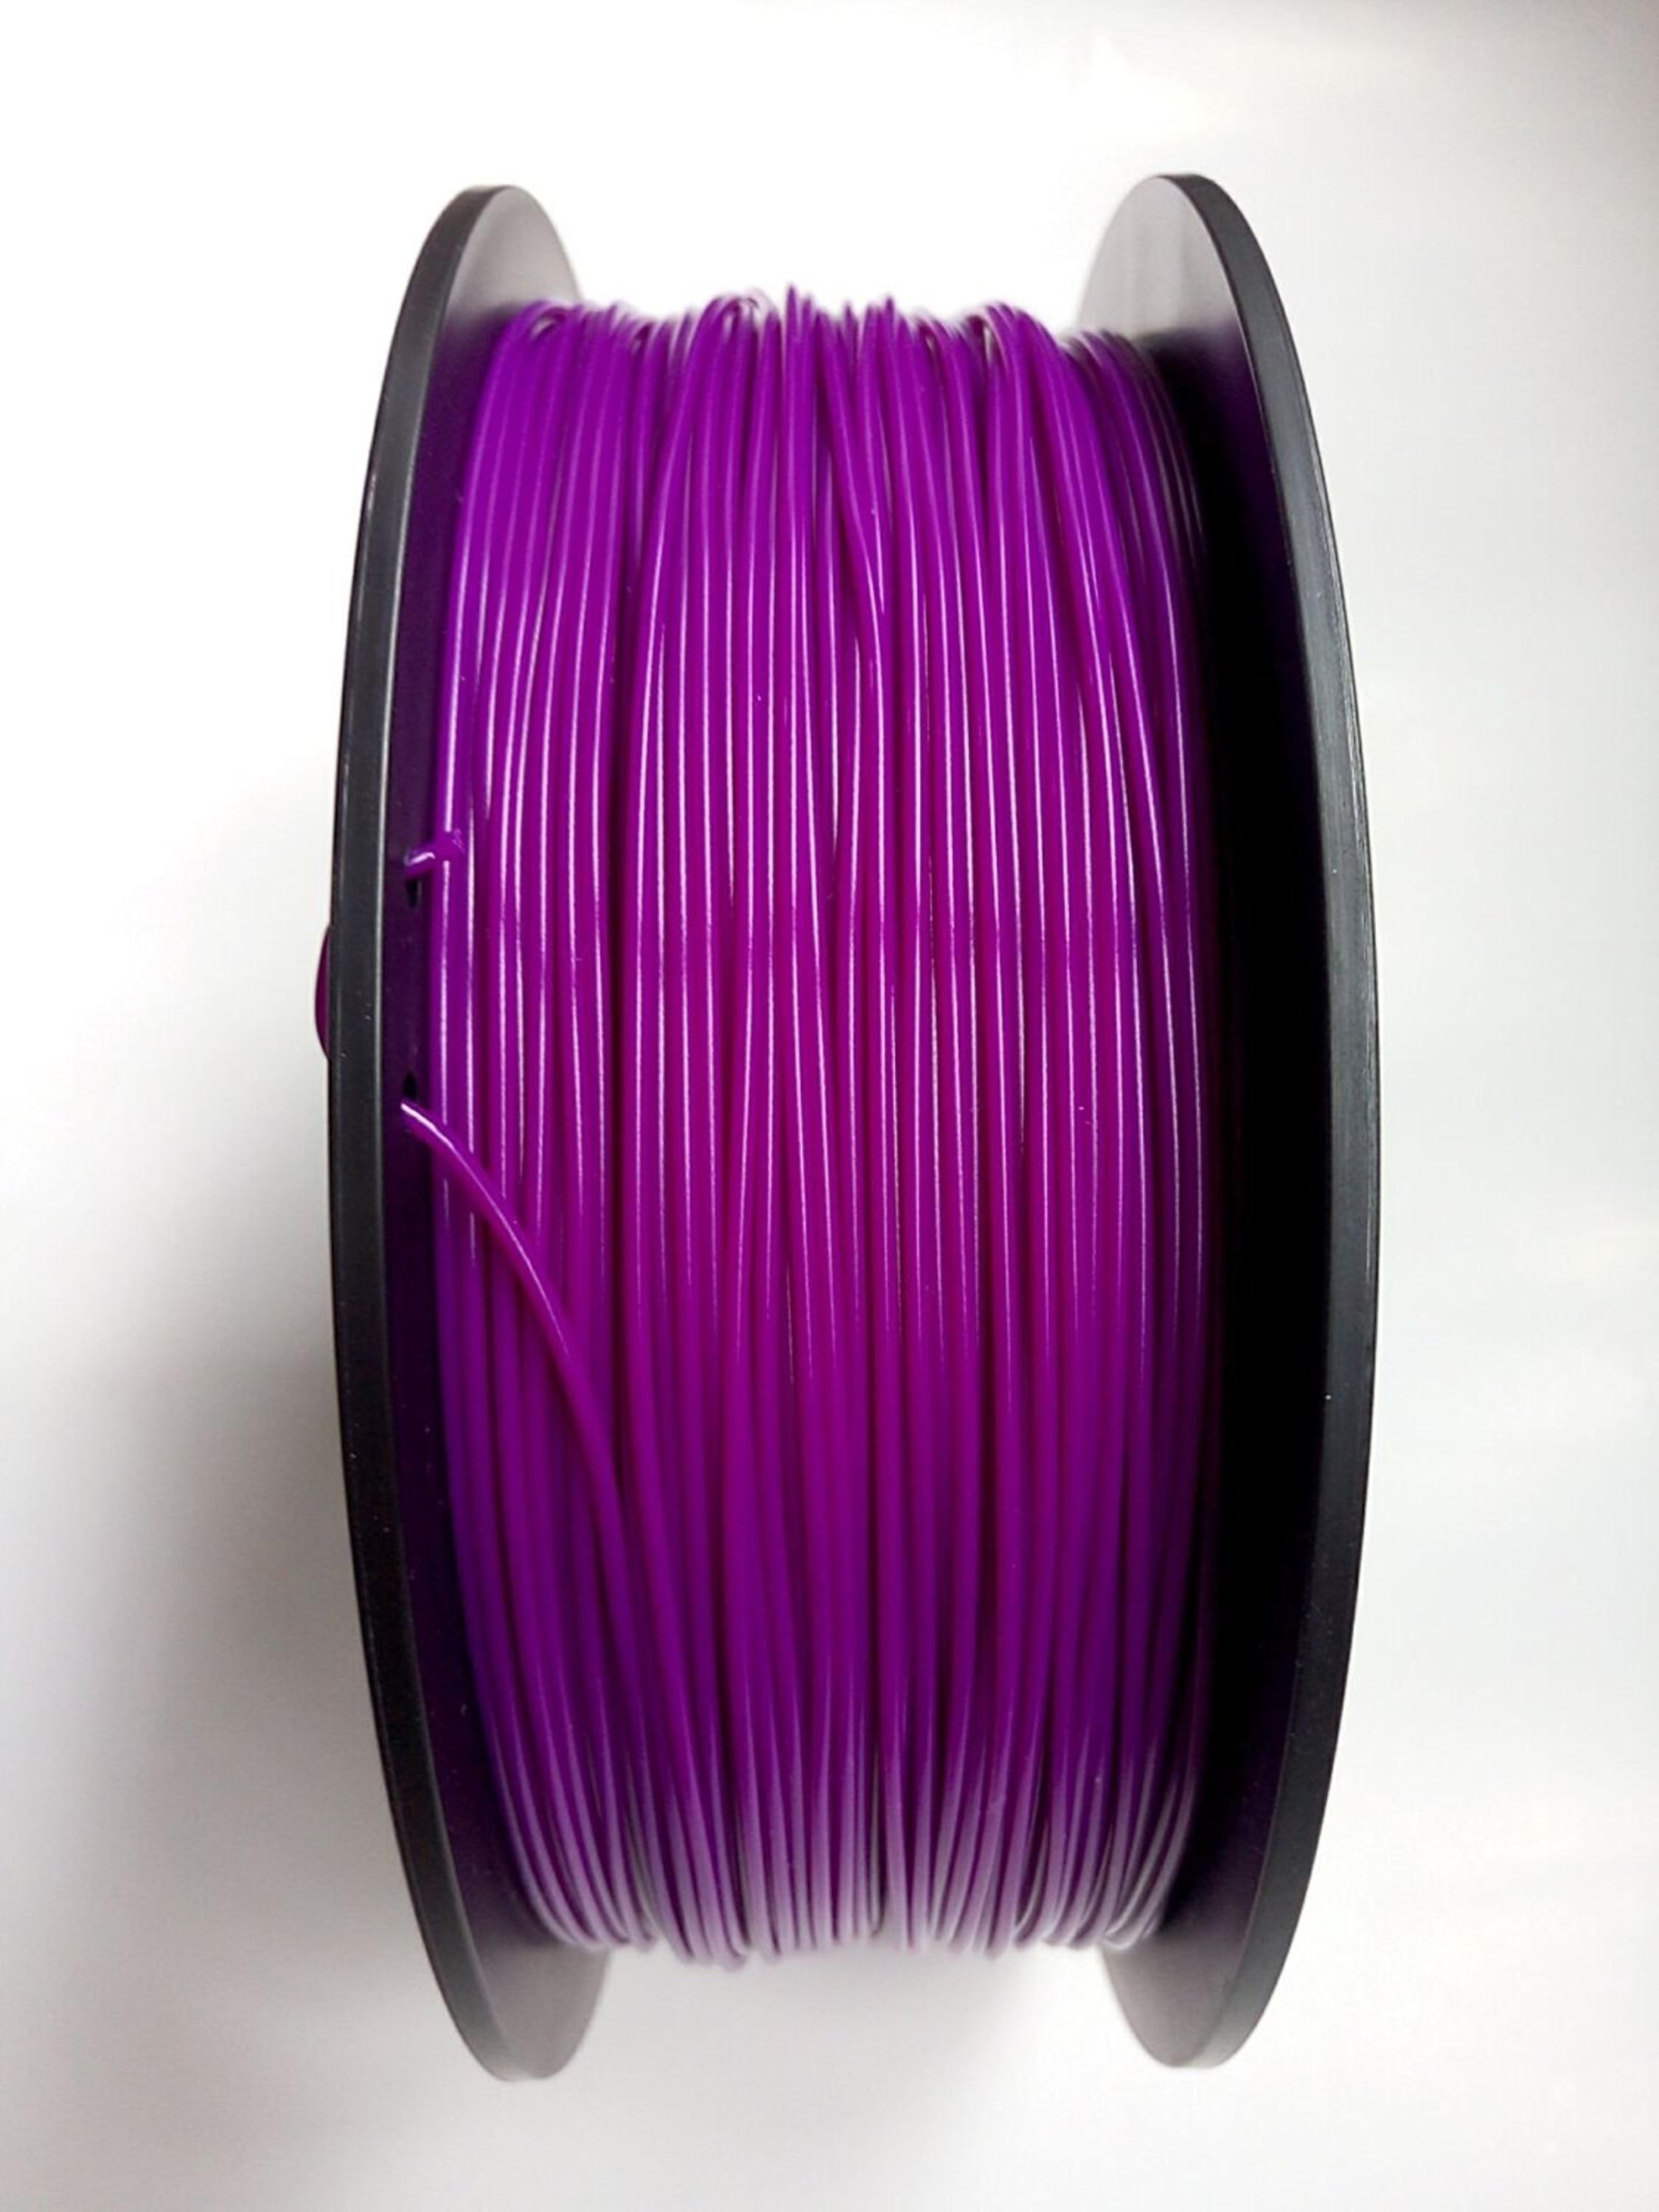 1.75mm Purple PLA 3D Printer Filament - Dimensional Accuracy +/- 0.05mm - Multiple Color Choices<br><br>Aliexpress